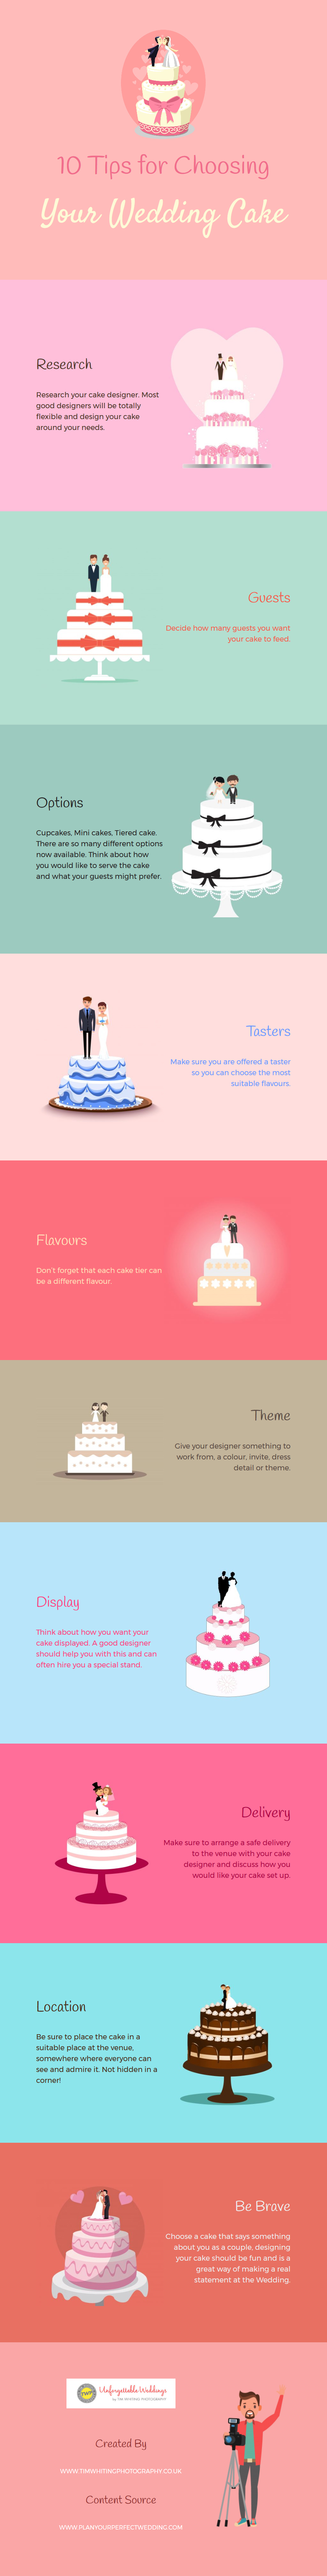 10 Tips for Choosing Your Wedding Cake.jpg